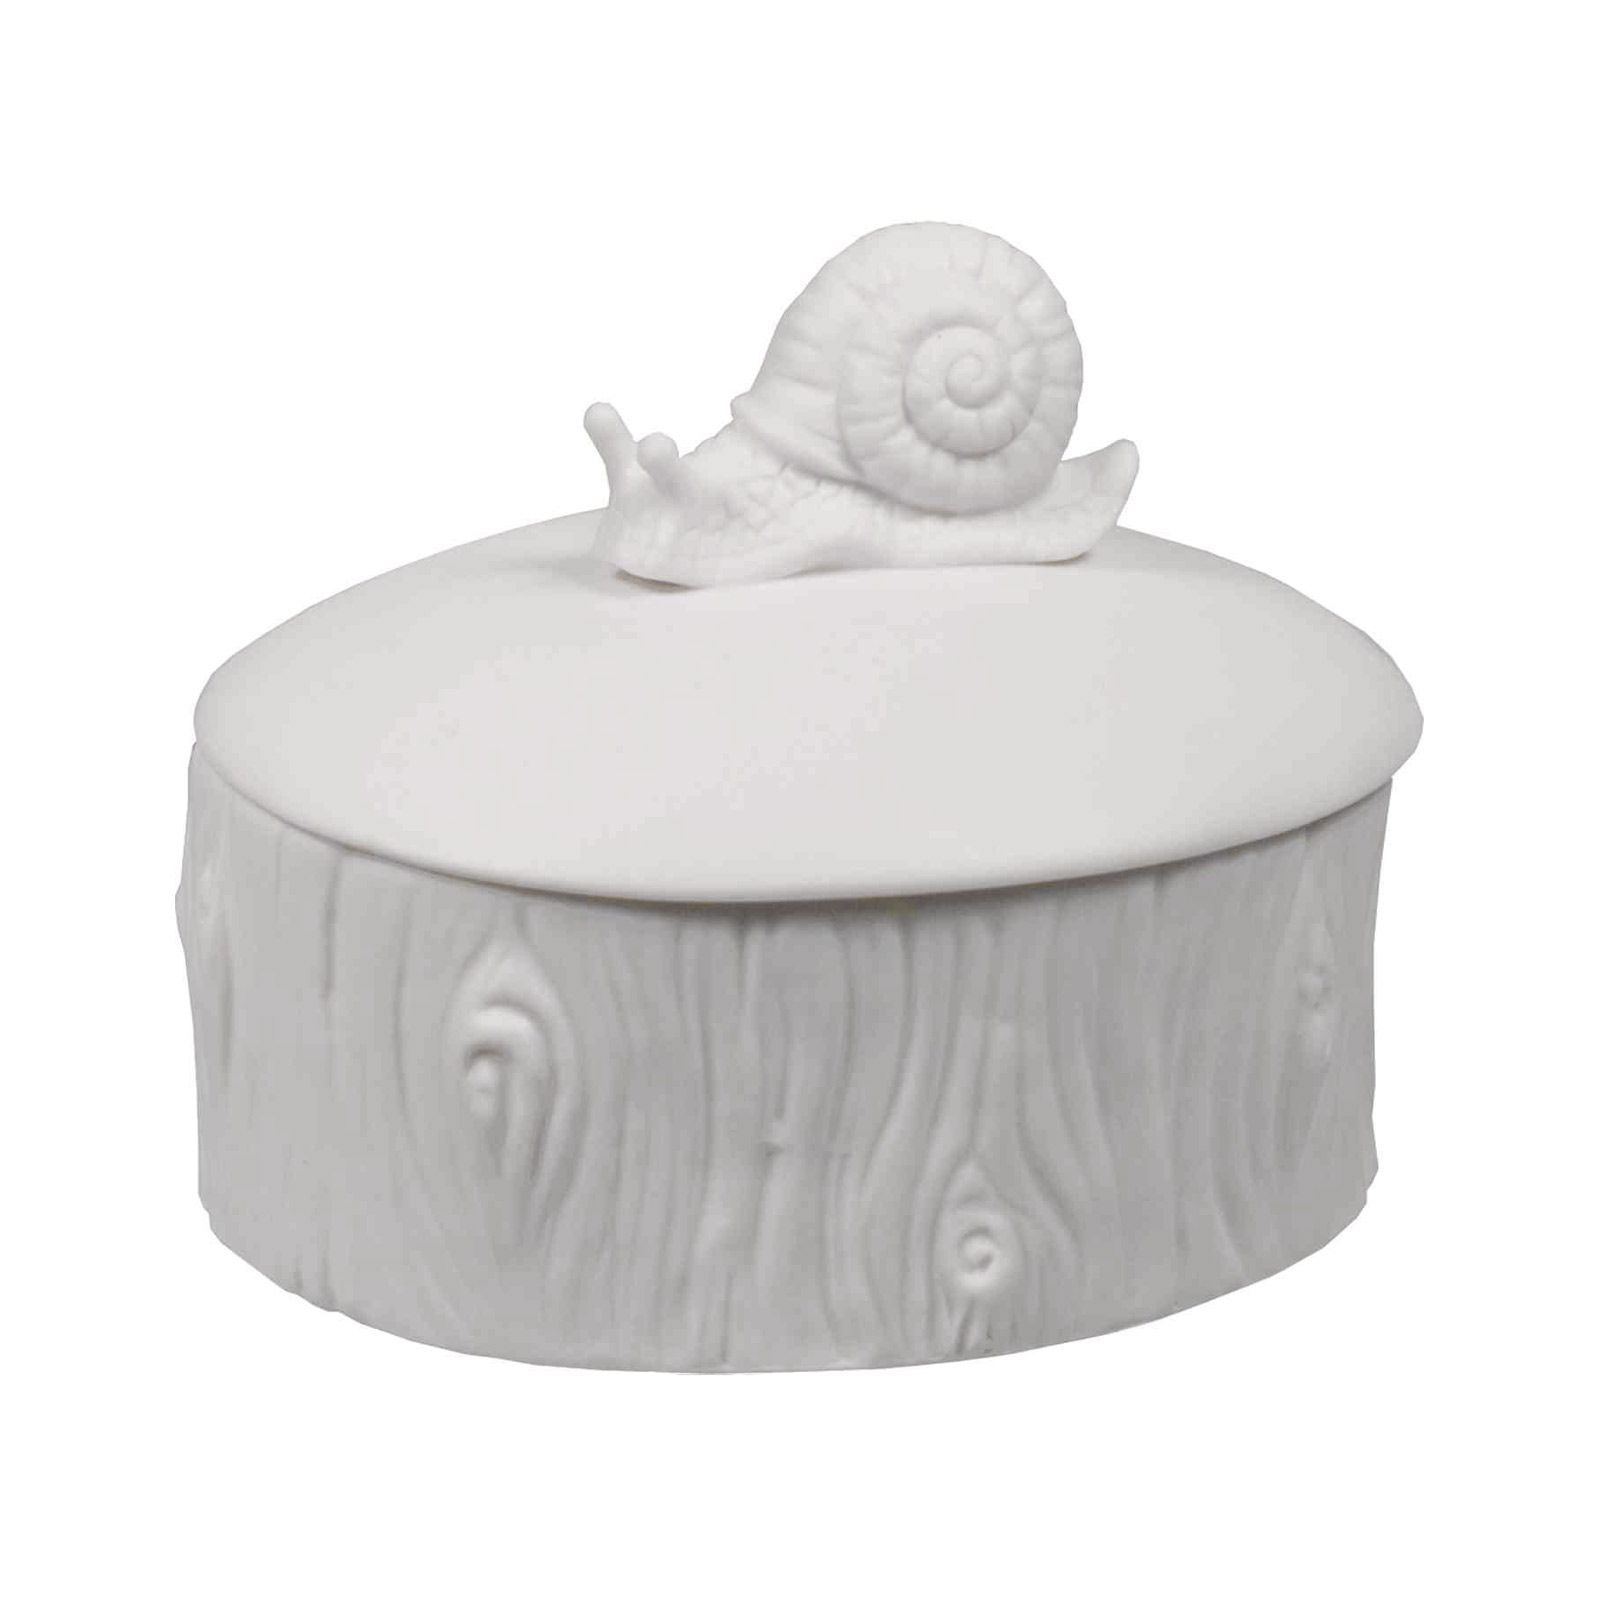 Keep your treasures safe in this porcelain box. An adorable snail sits atop the faux tree trunk, guarding your items while you're away.  Find the Snailed It Keepsake Box, as seen in the Retro Dreaming Collection at http://dotandbo.com/collections/in-style-retro-dreaming?utm_source=pinterest&utm_medium=organic&db_sku=SML0047